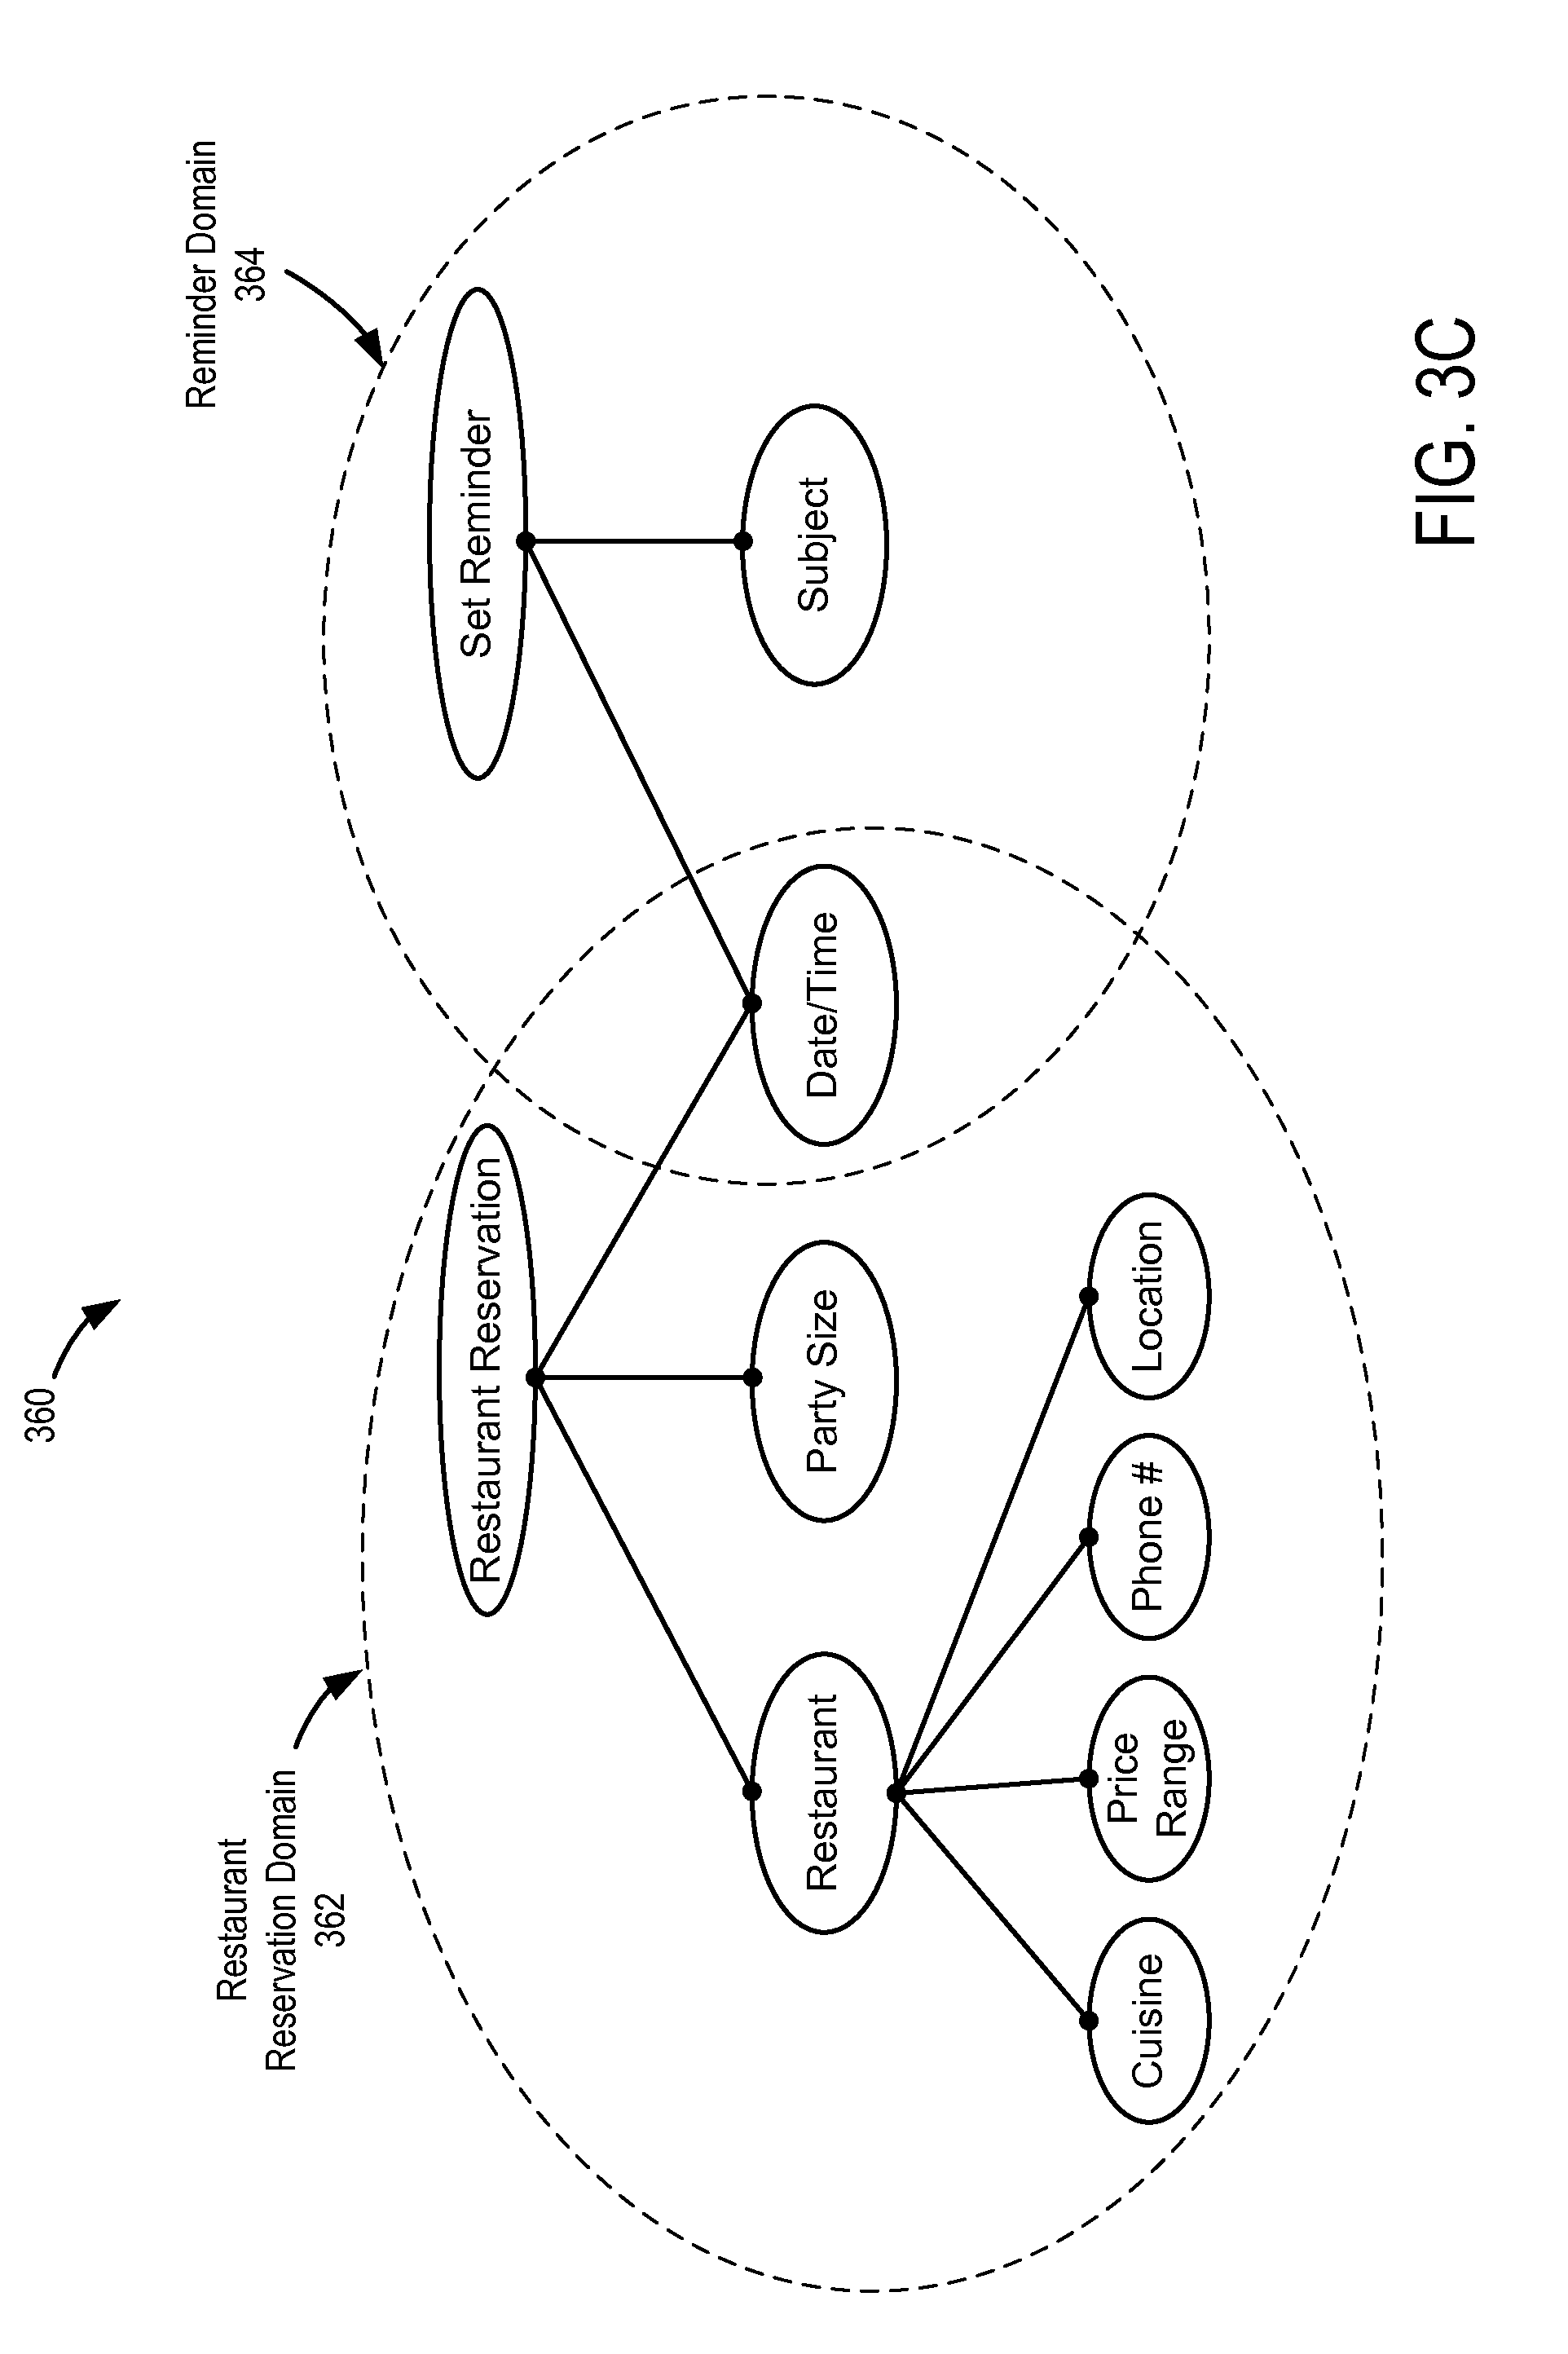 Us9576574b2 context sensitive handling of interruptions by intelligent digital assistant patents